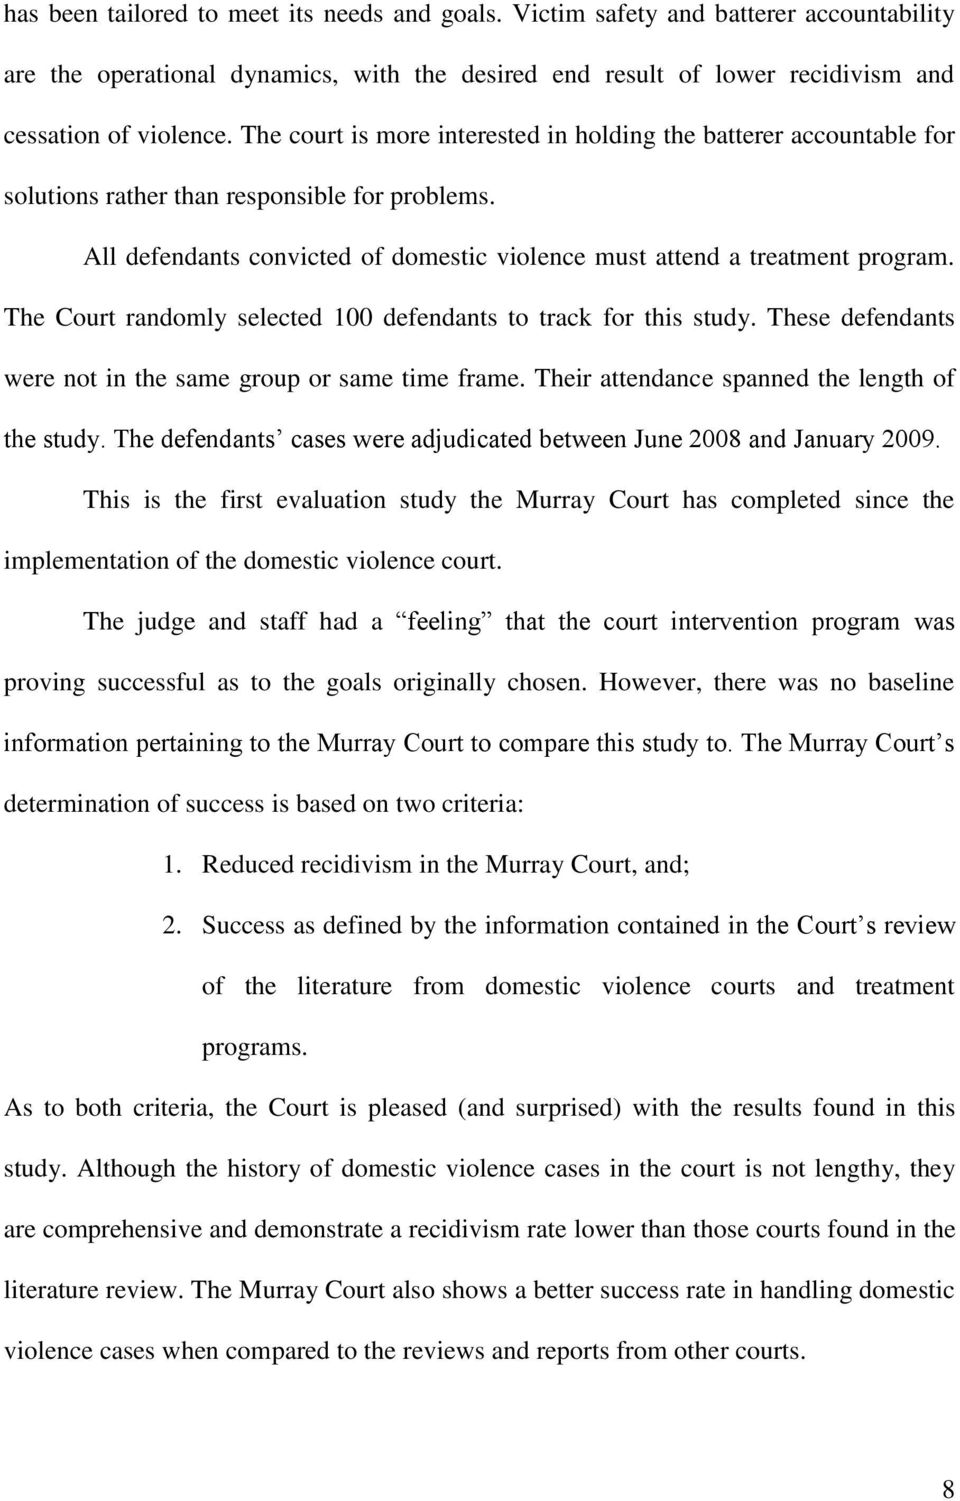 The Court randomly selected 100 defendants to track for this study. These defendants were not in the same group or same time frame. Their attendance spanned the length of the study.